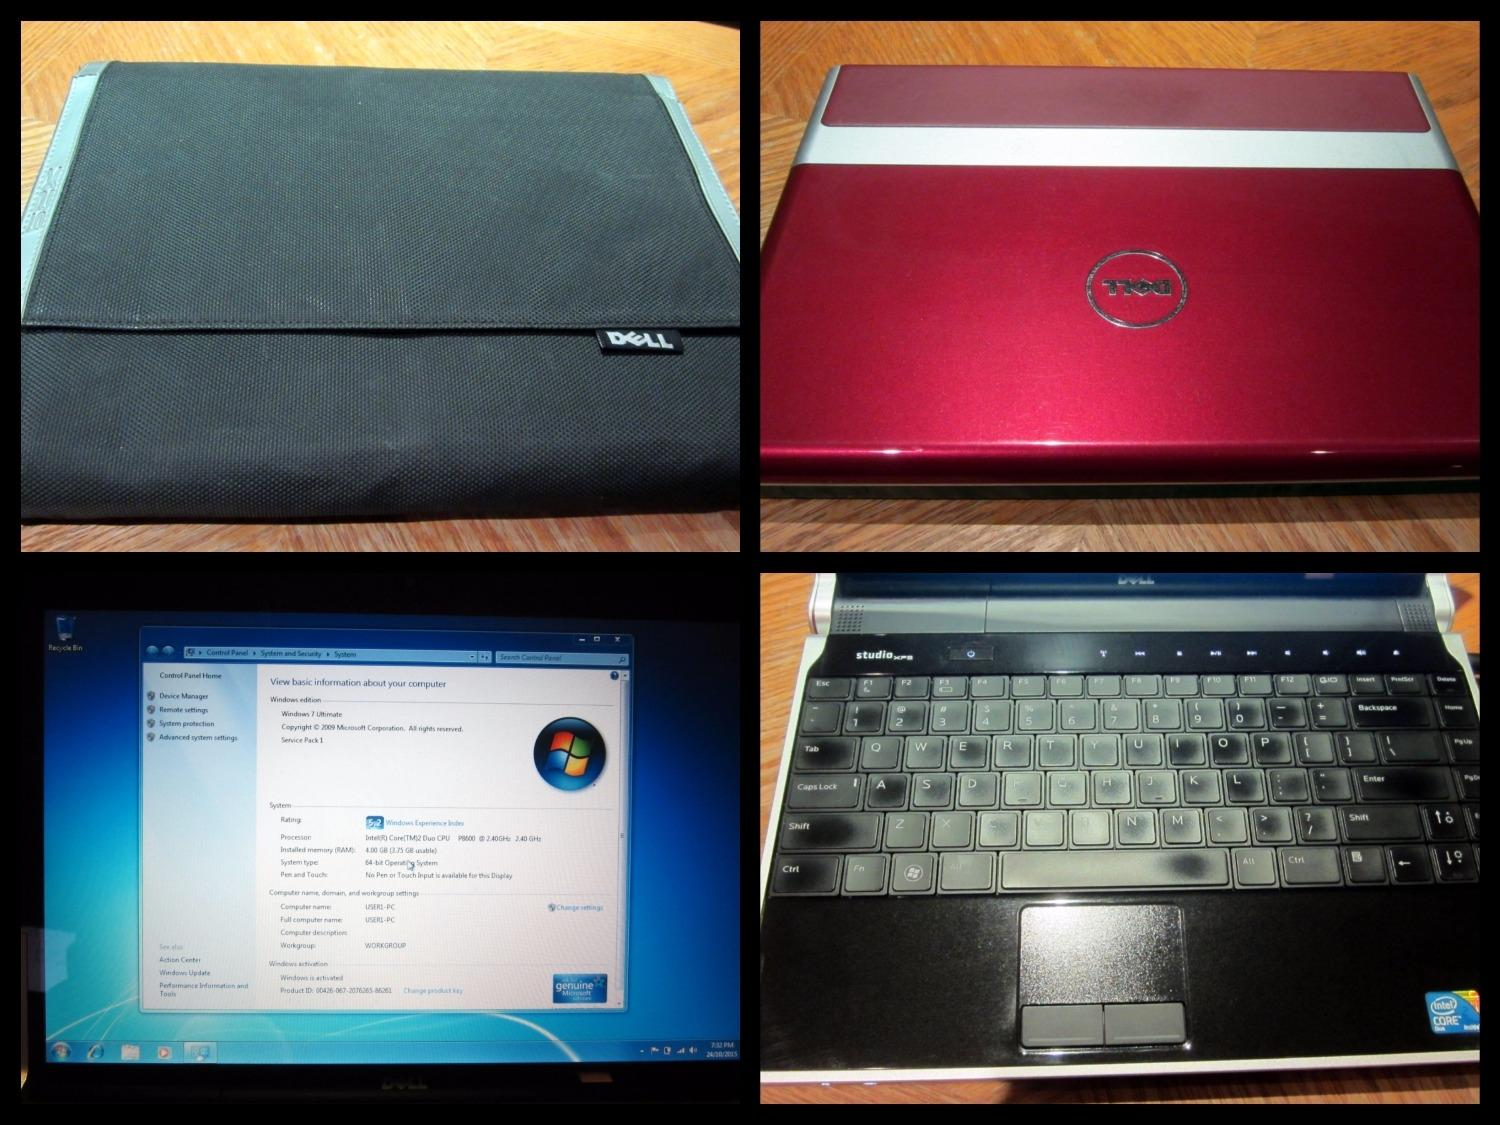 DELL StudioFPS M1340 Laptop - Used but in Excellent Condition